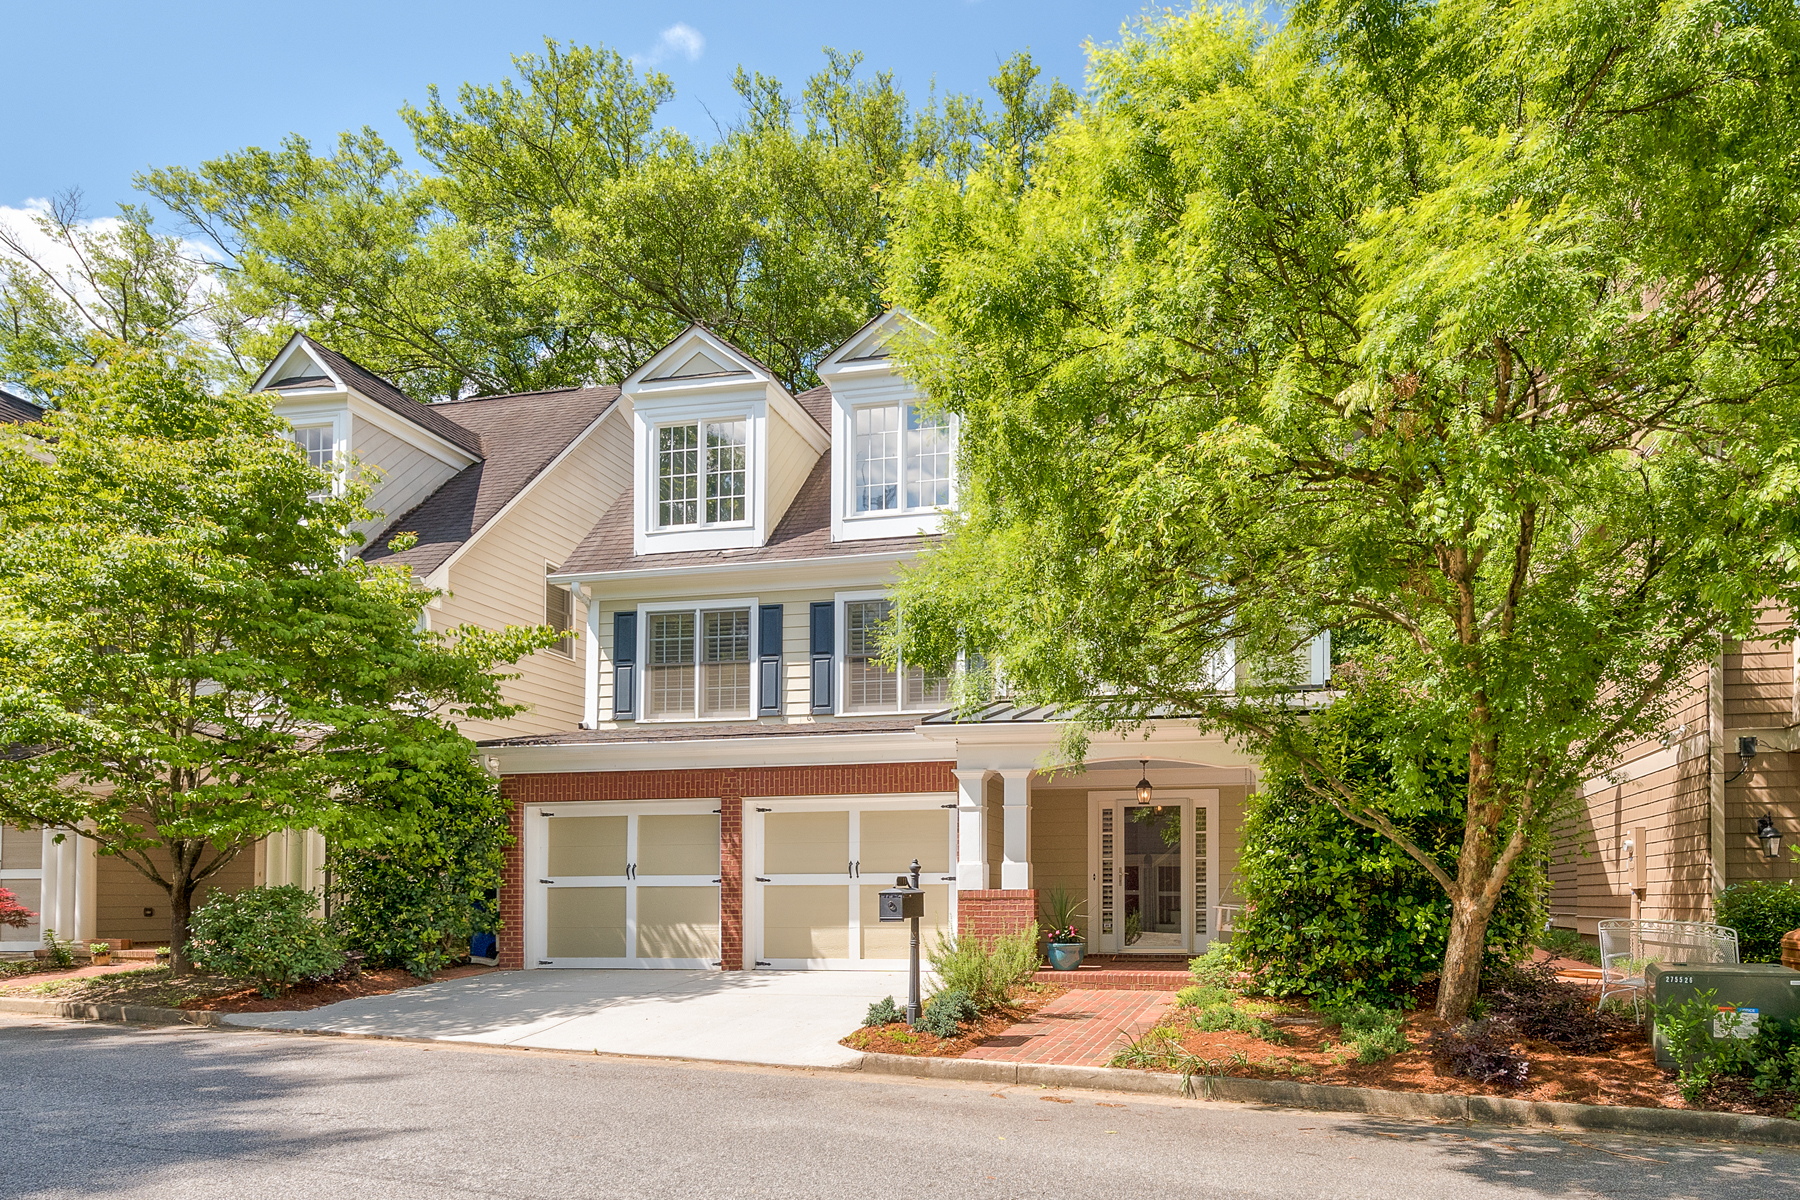 Vivienda unifamiliar por un Venta en Magnificent In Morningside 1311 Edmund Park Drive NE Morningside, Atlanta, Georgia, 30306 Estados Unidos